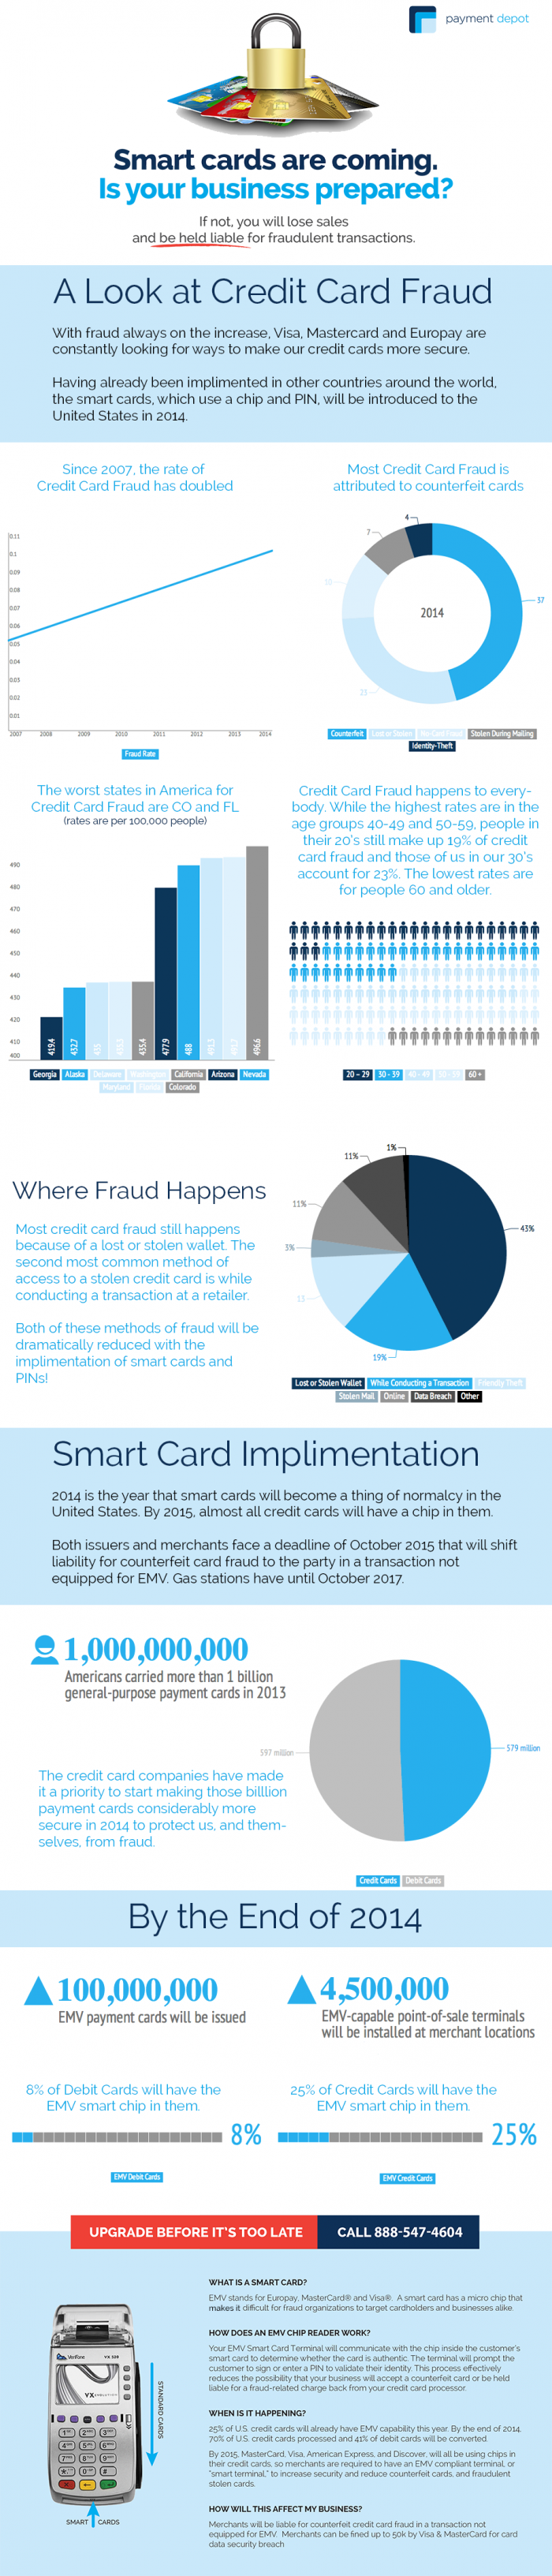 Is Your Business Prepared for Smart Credit Cards?